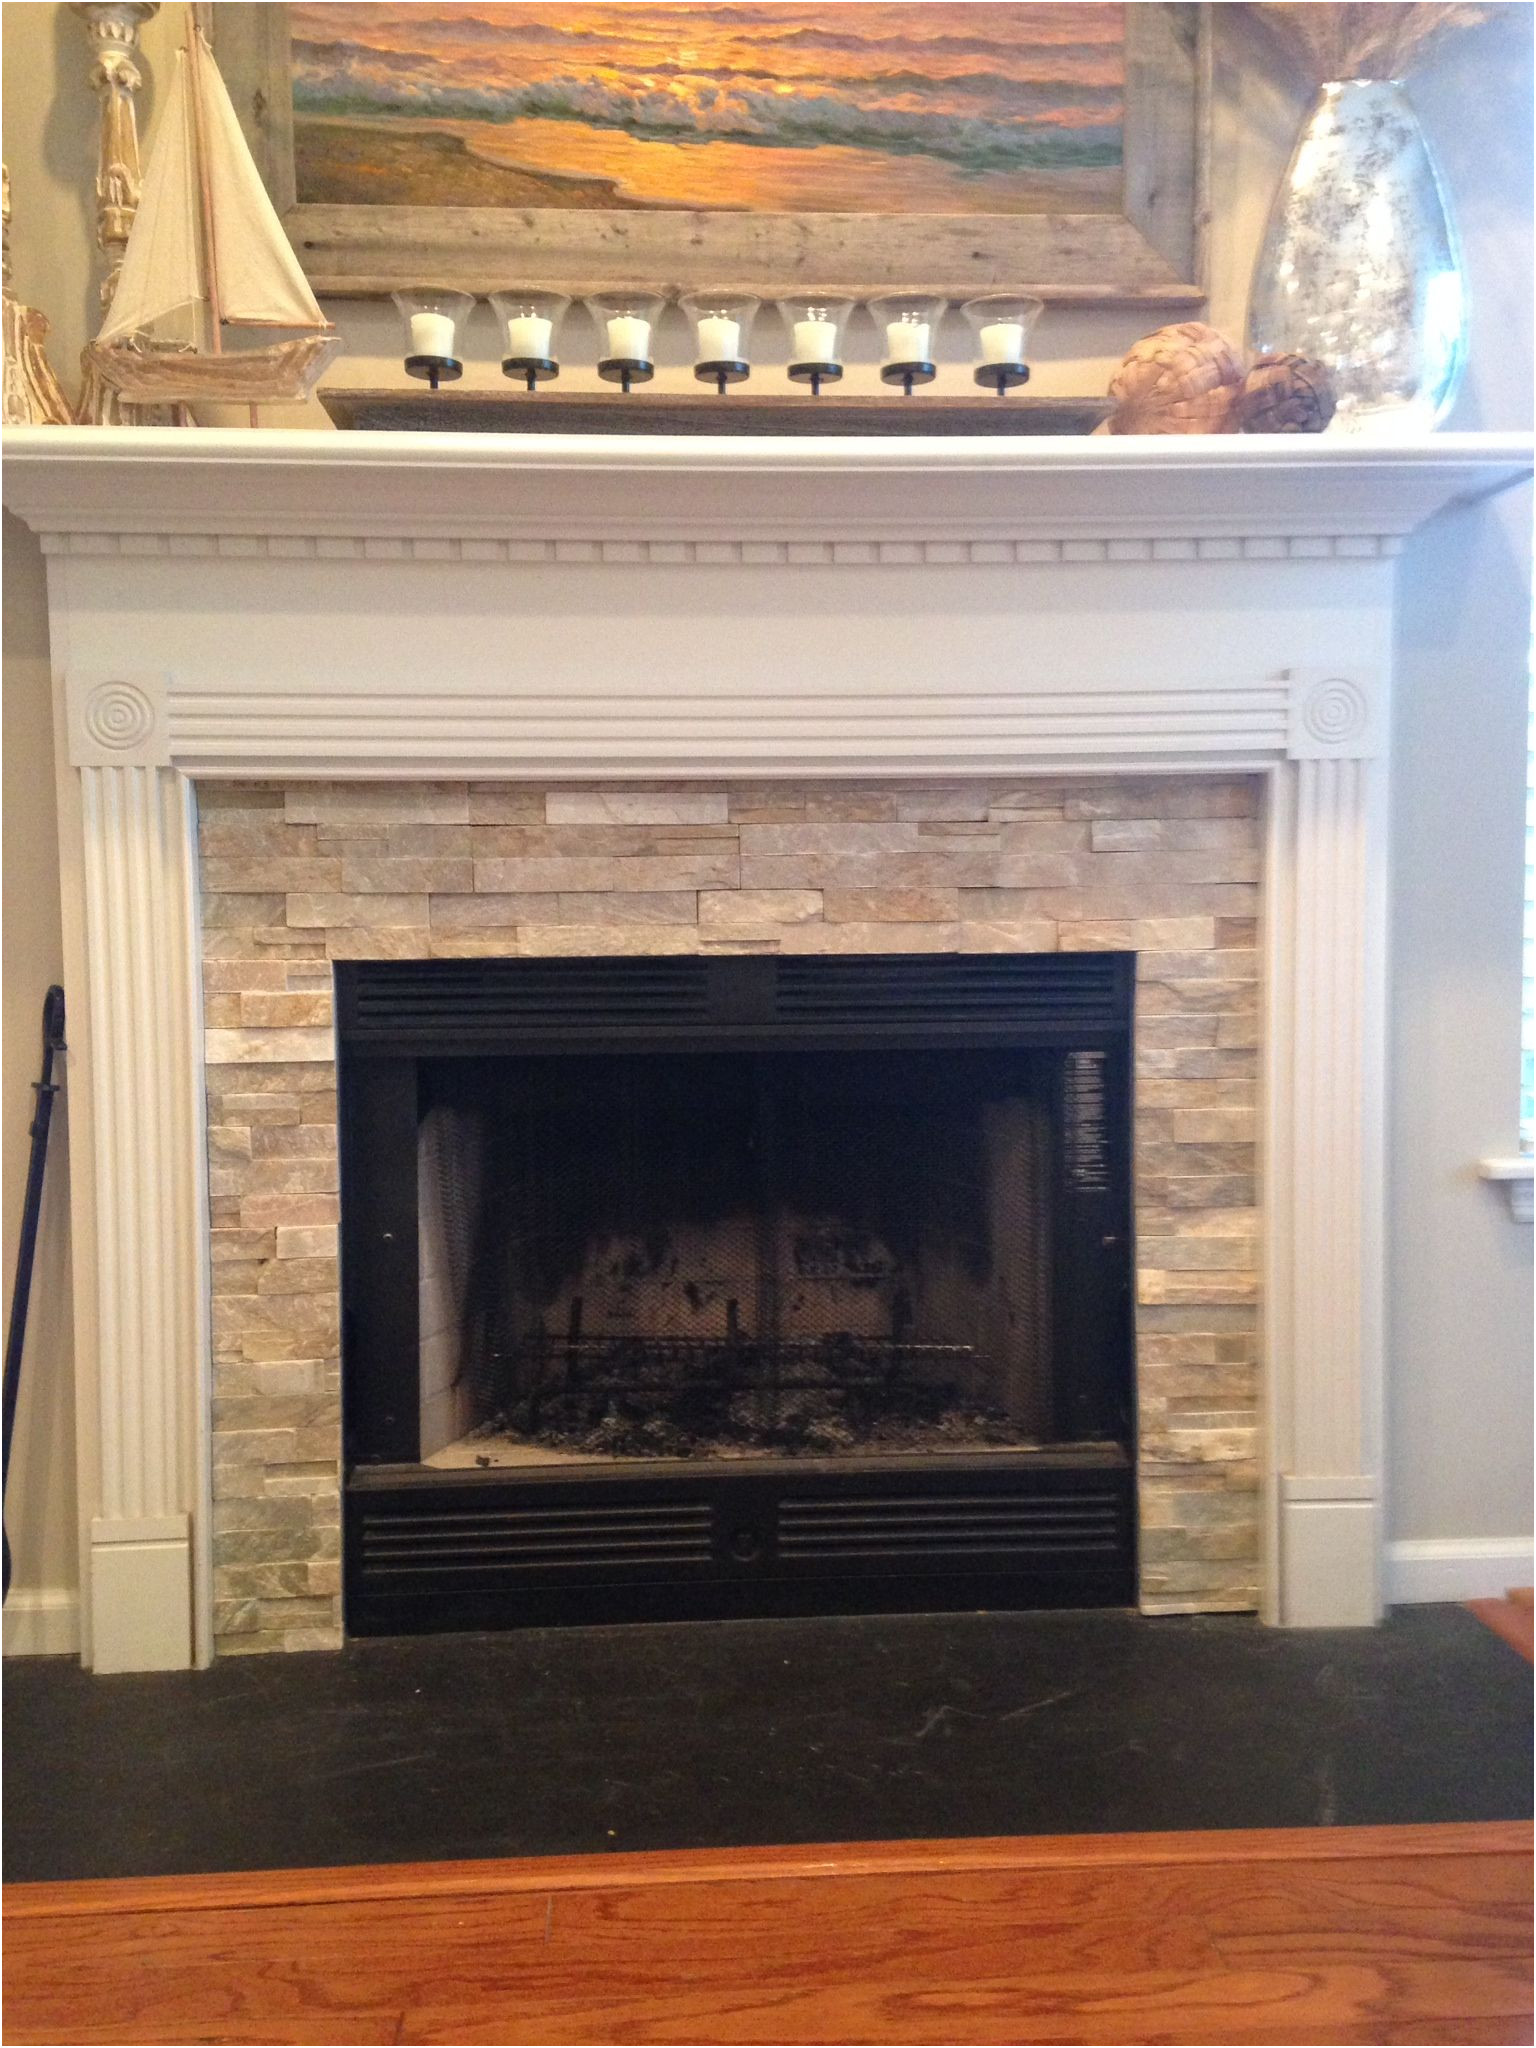 Ideas for Fireplace Hearth Inspirational Fireplace Idea Mantel Wainscoting Design Craftsman